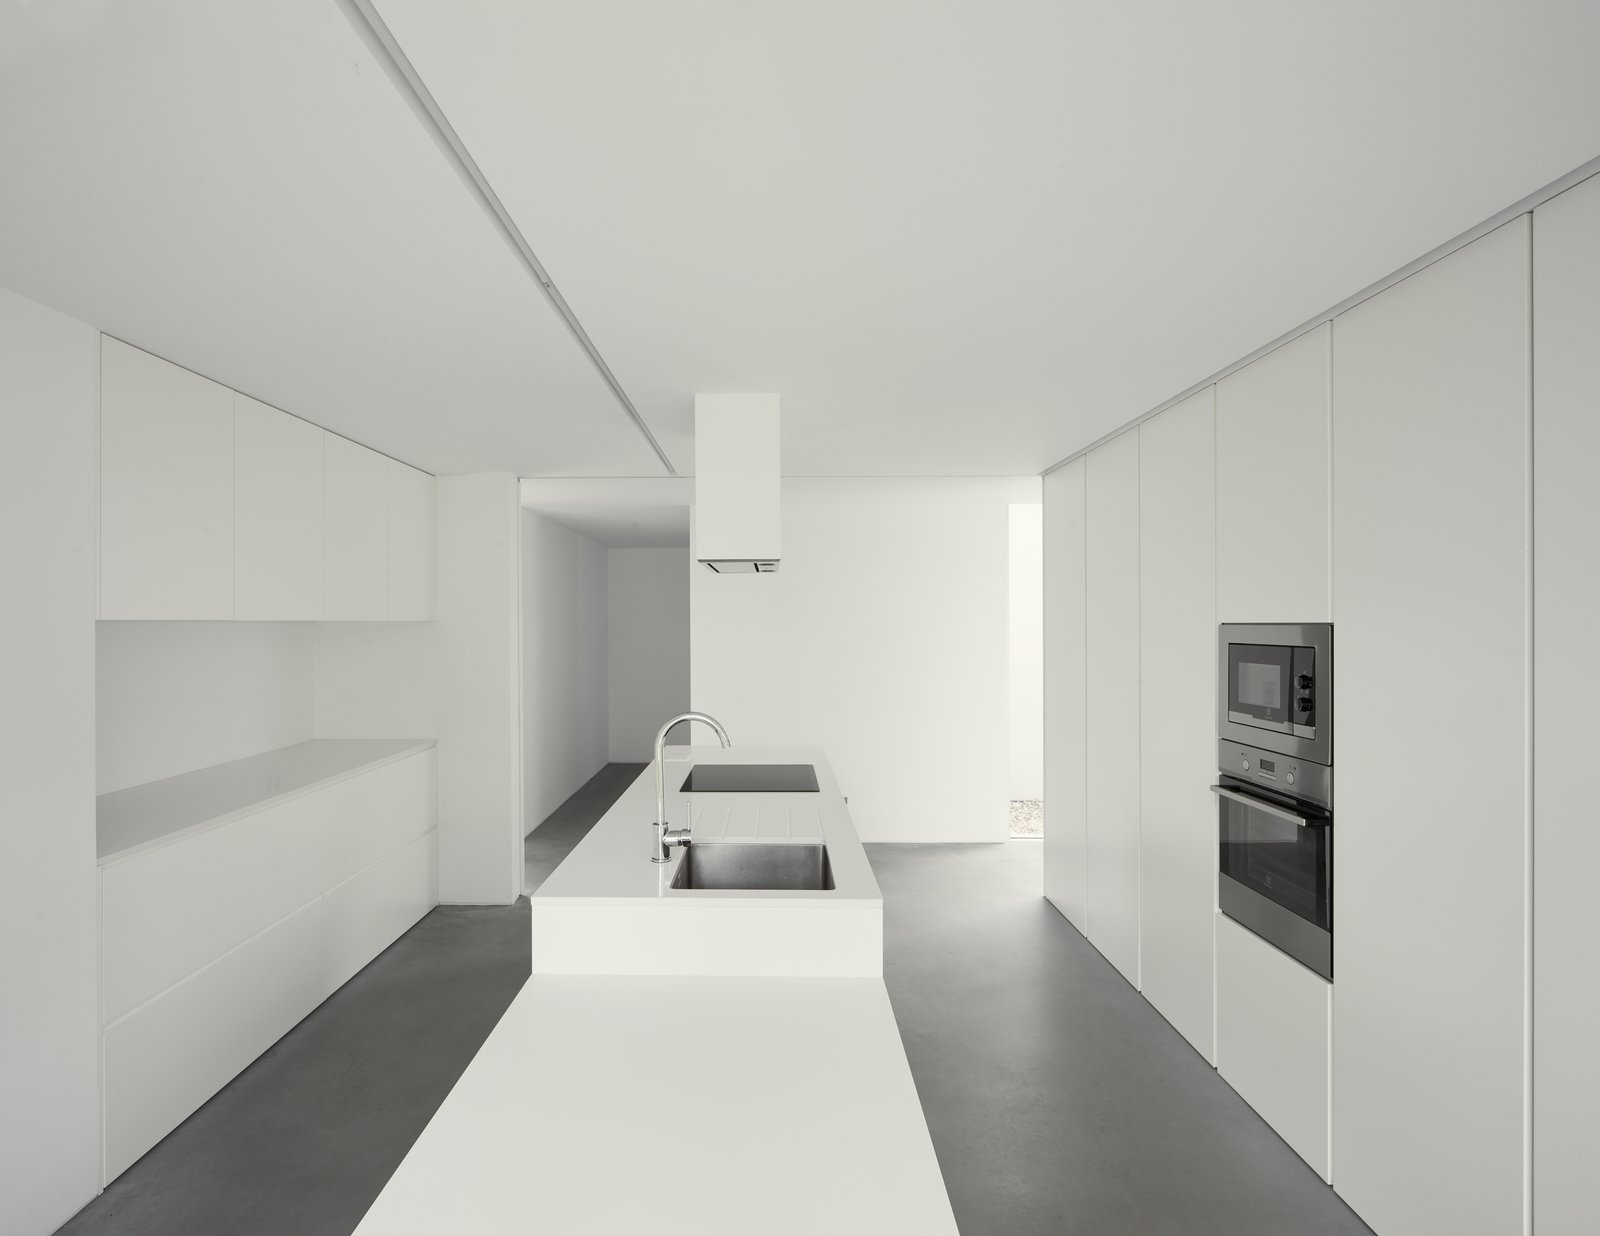 Kitchen, Engineered Quartz Counter, White Cabinet, Concrete Floor, Cooktops, Undermount Sink, and Wall Oven  Fanu House